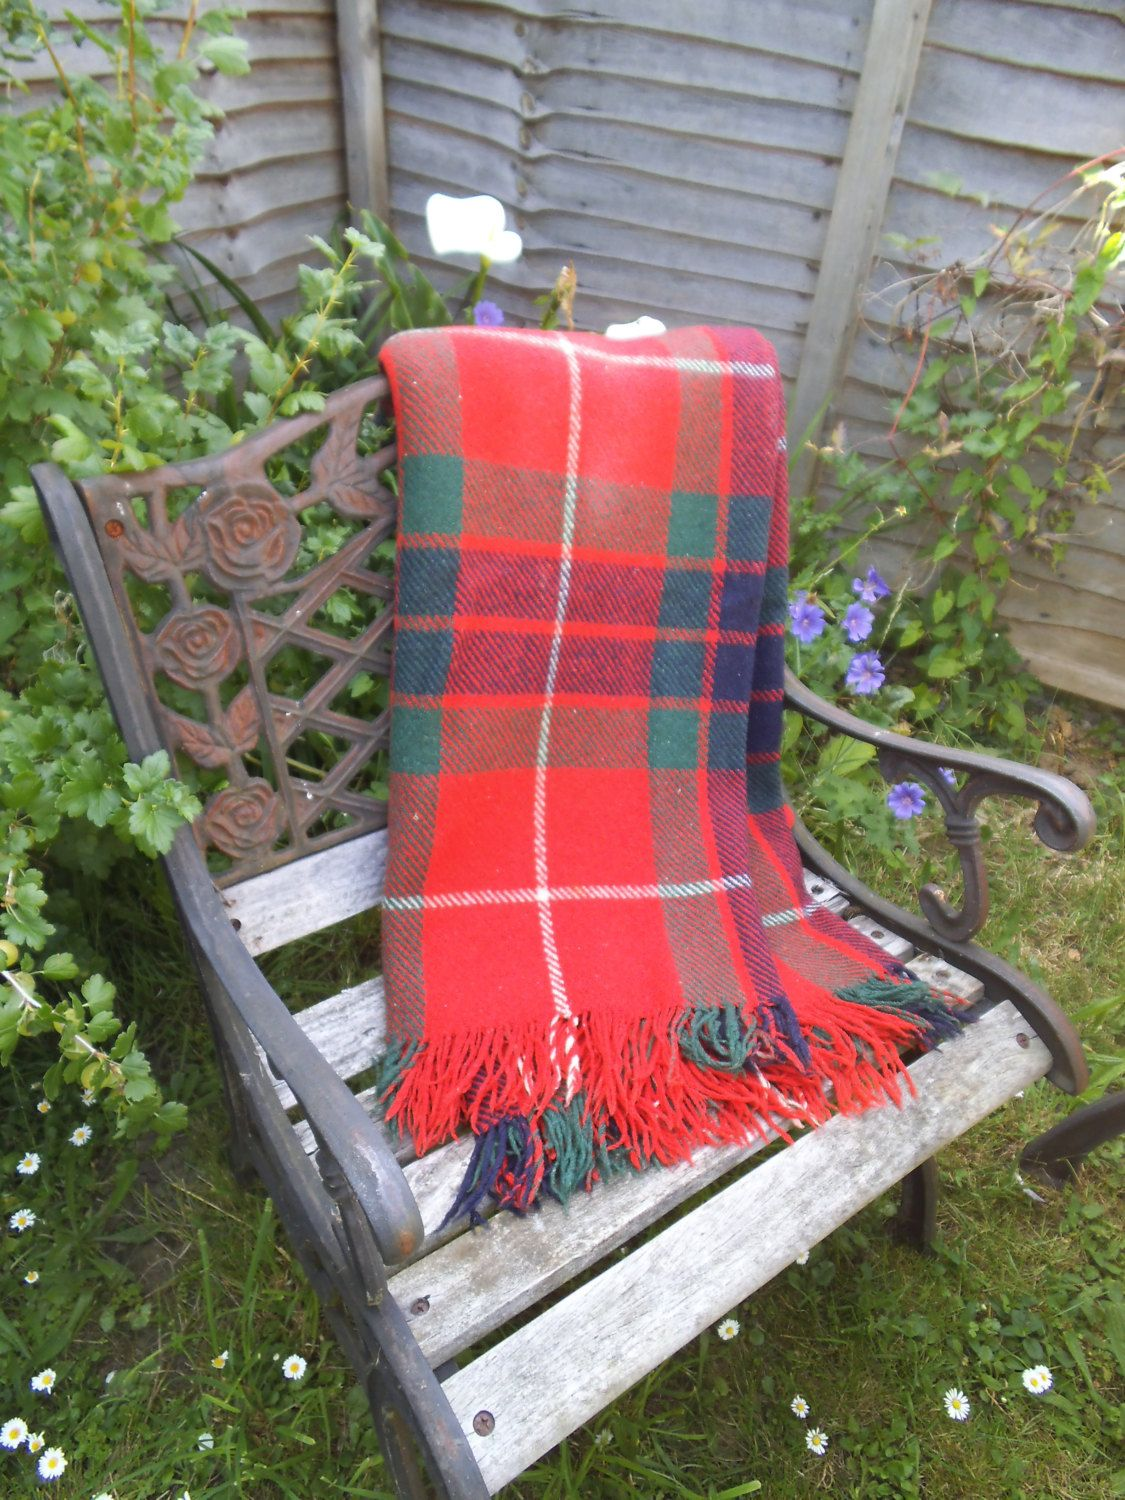 Tartan Clan Rug Picnic Blanket All Wool Made In England Red Fringed